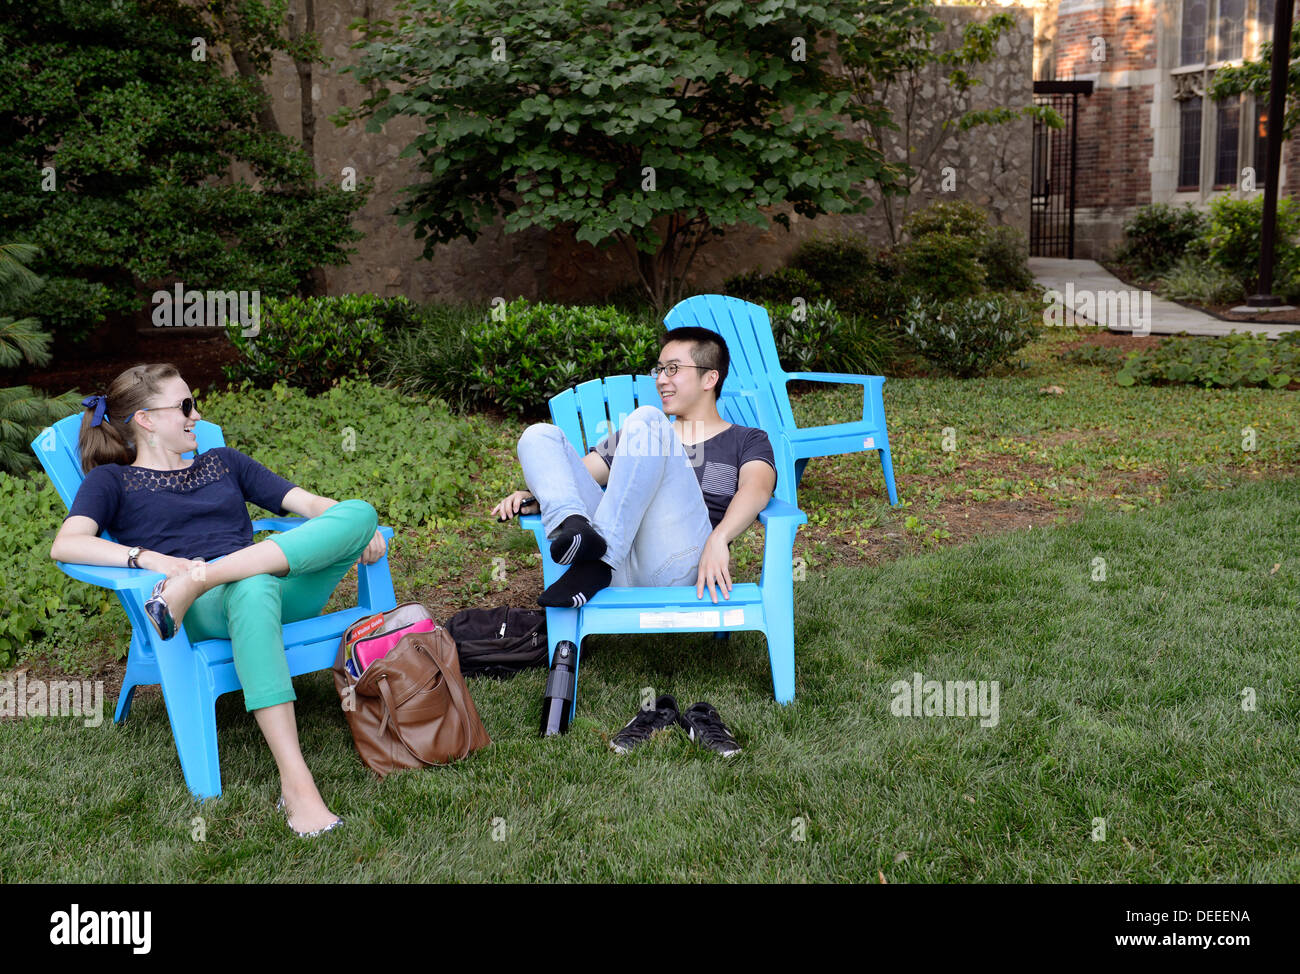 Yale University students attending summer school relax after dinner at Morse Residential College. - Stock Image